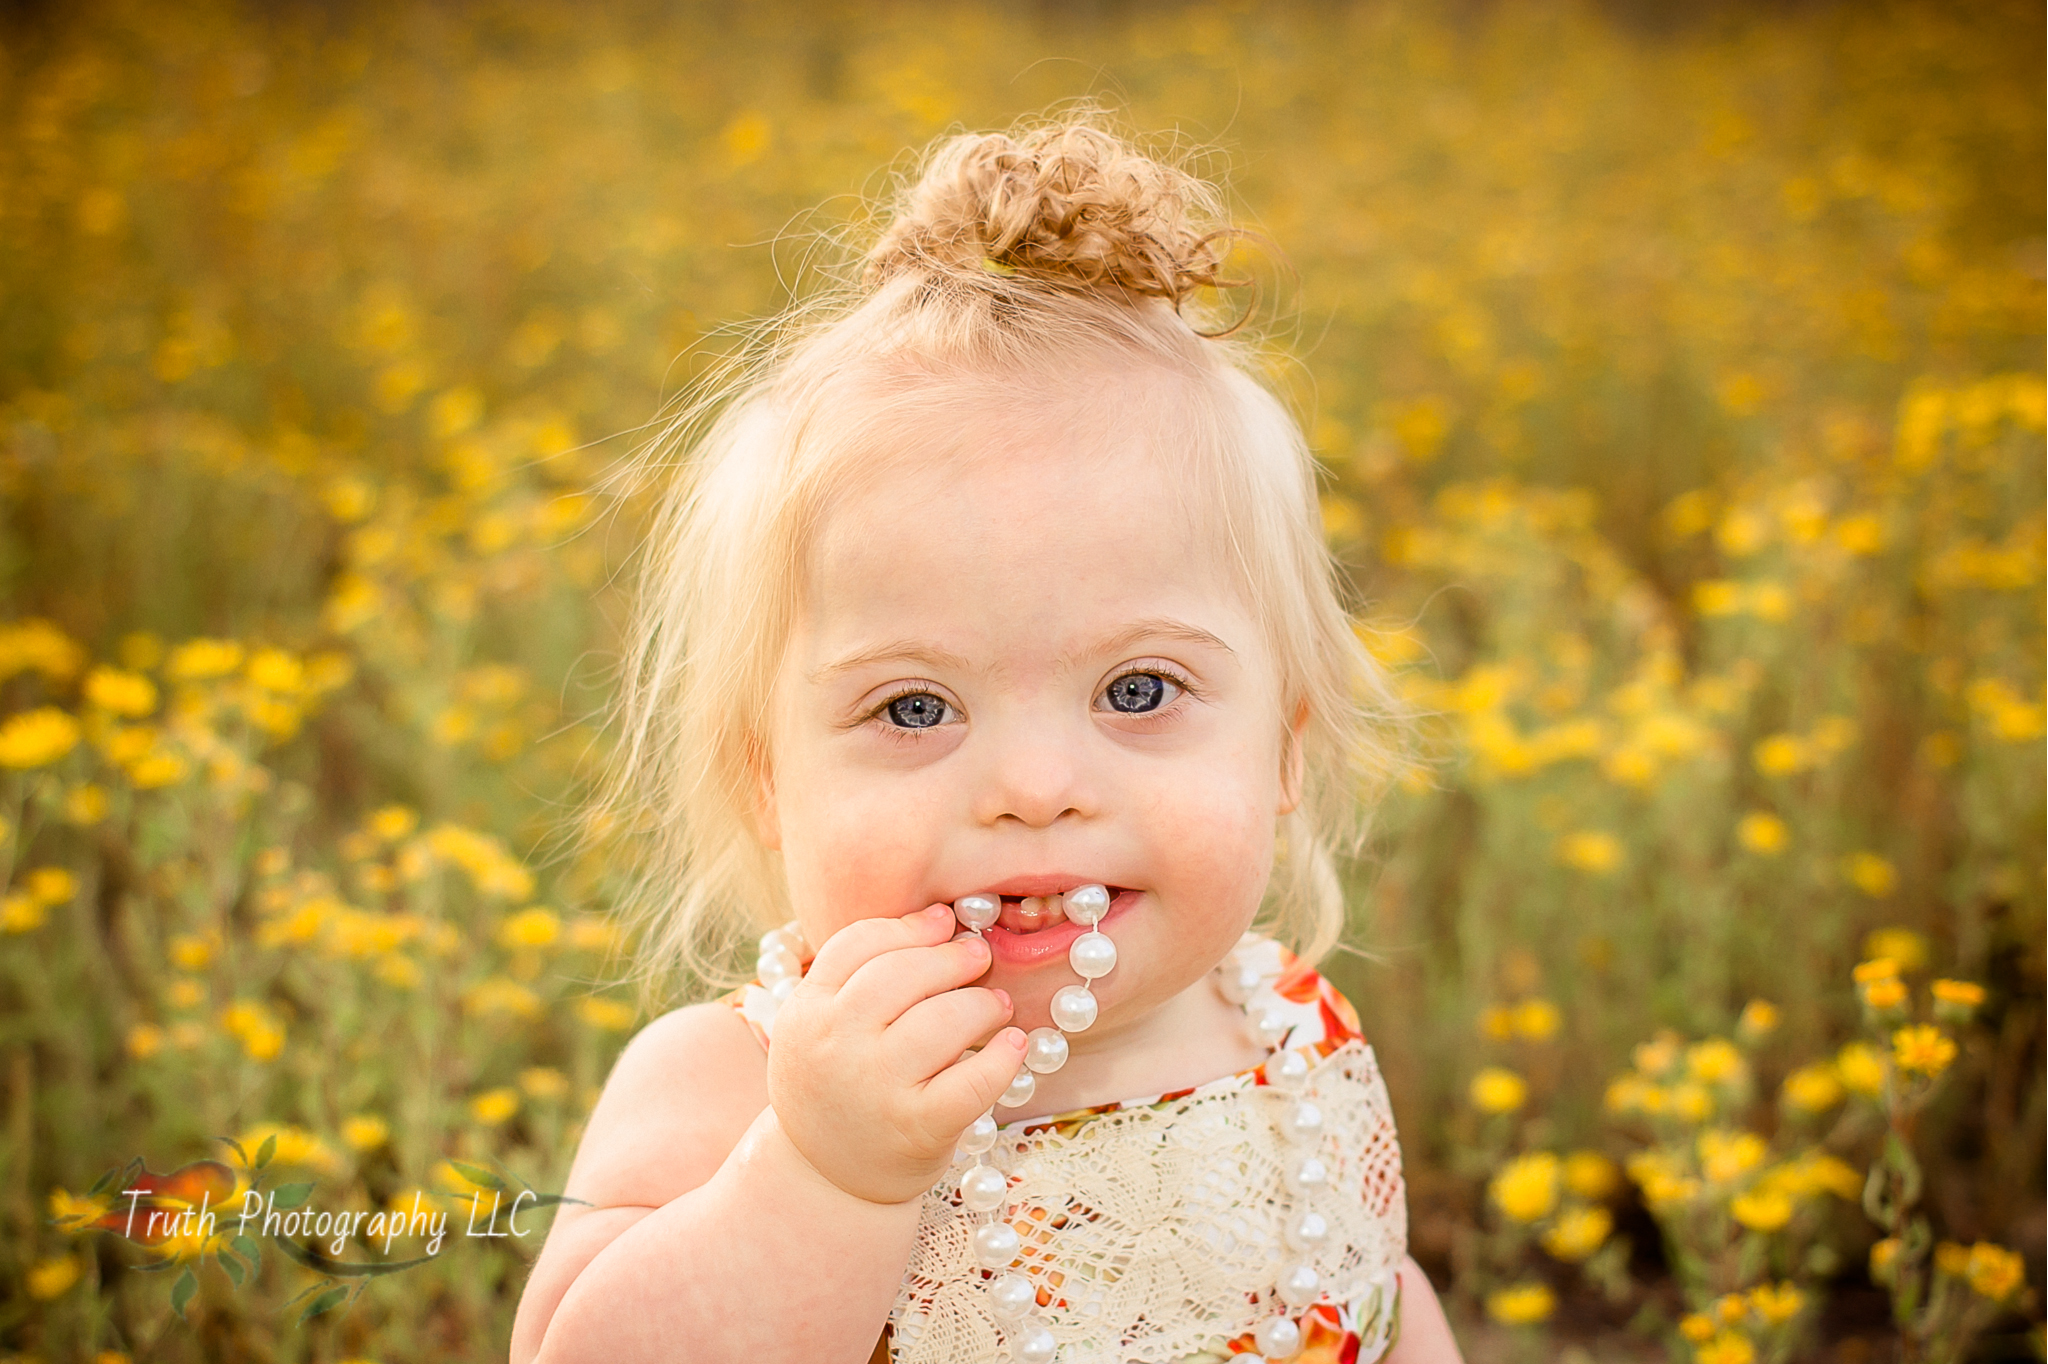 Truth-Photography-Westminster-baby-photographer.jpg